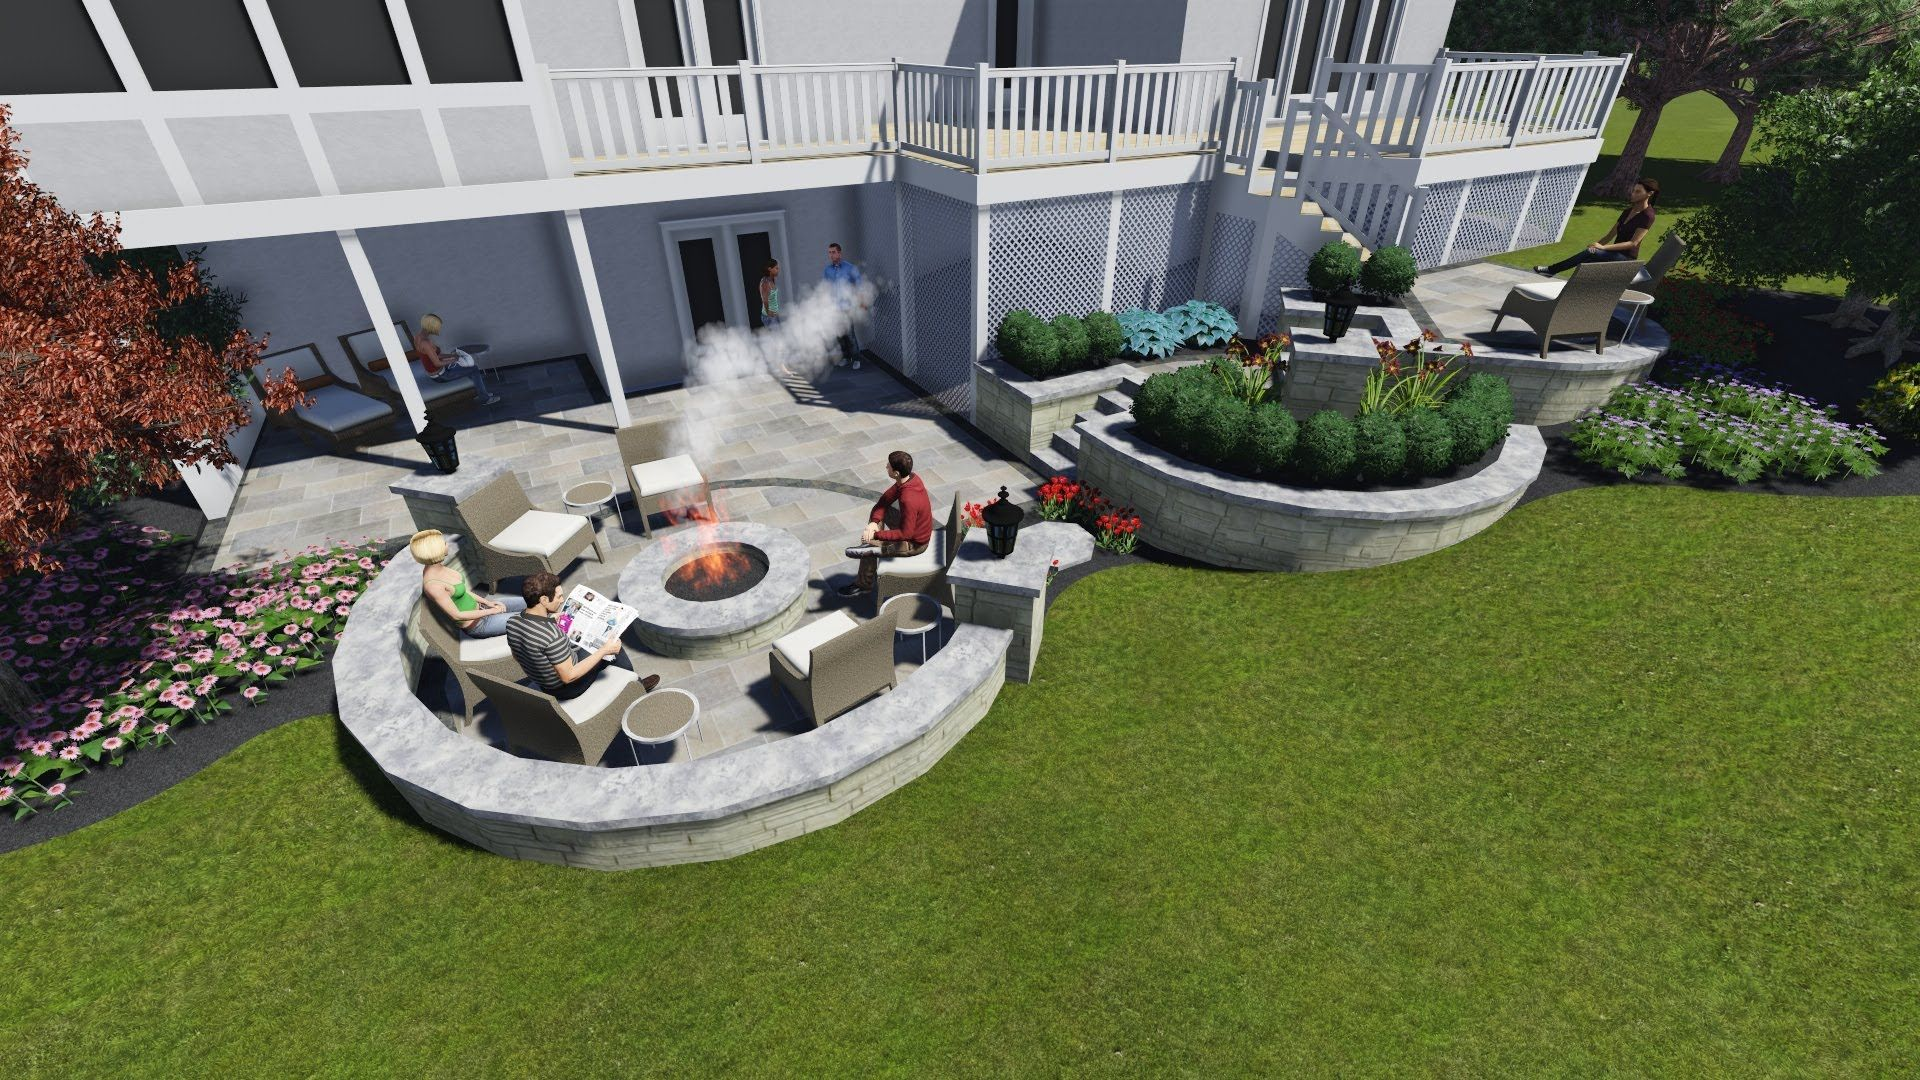 Image Result For Walkout Basement Patio Below Deck Walkout Basement Patio Patio Walkout Basement